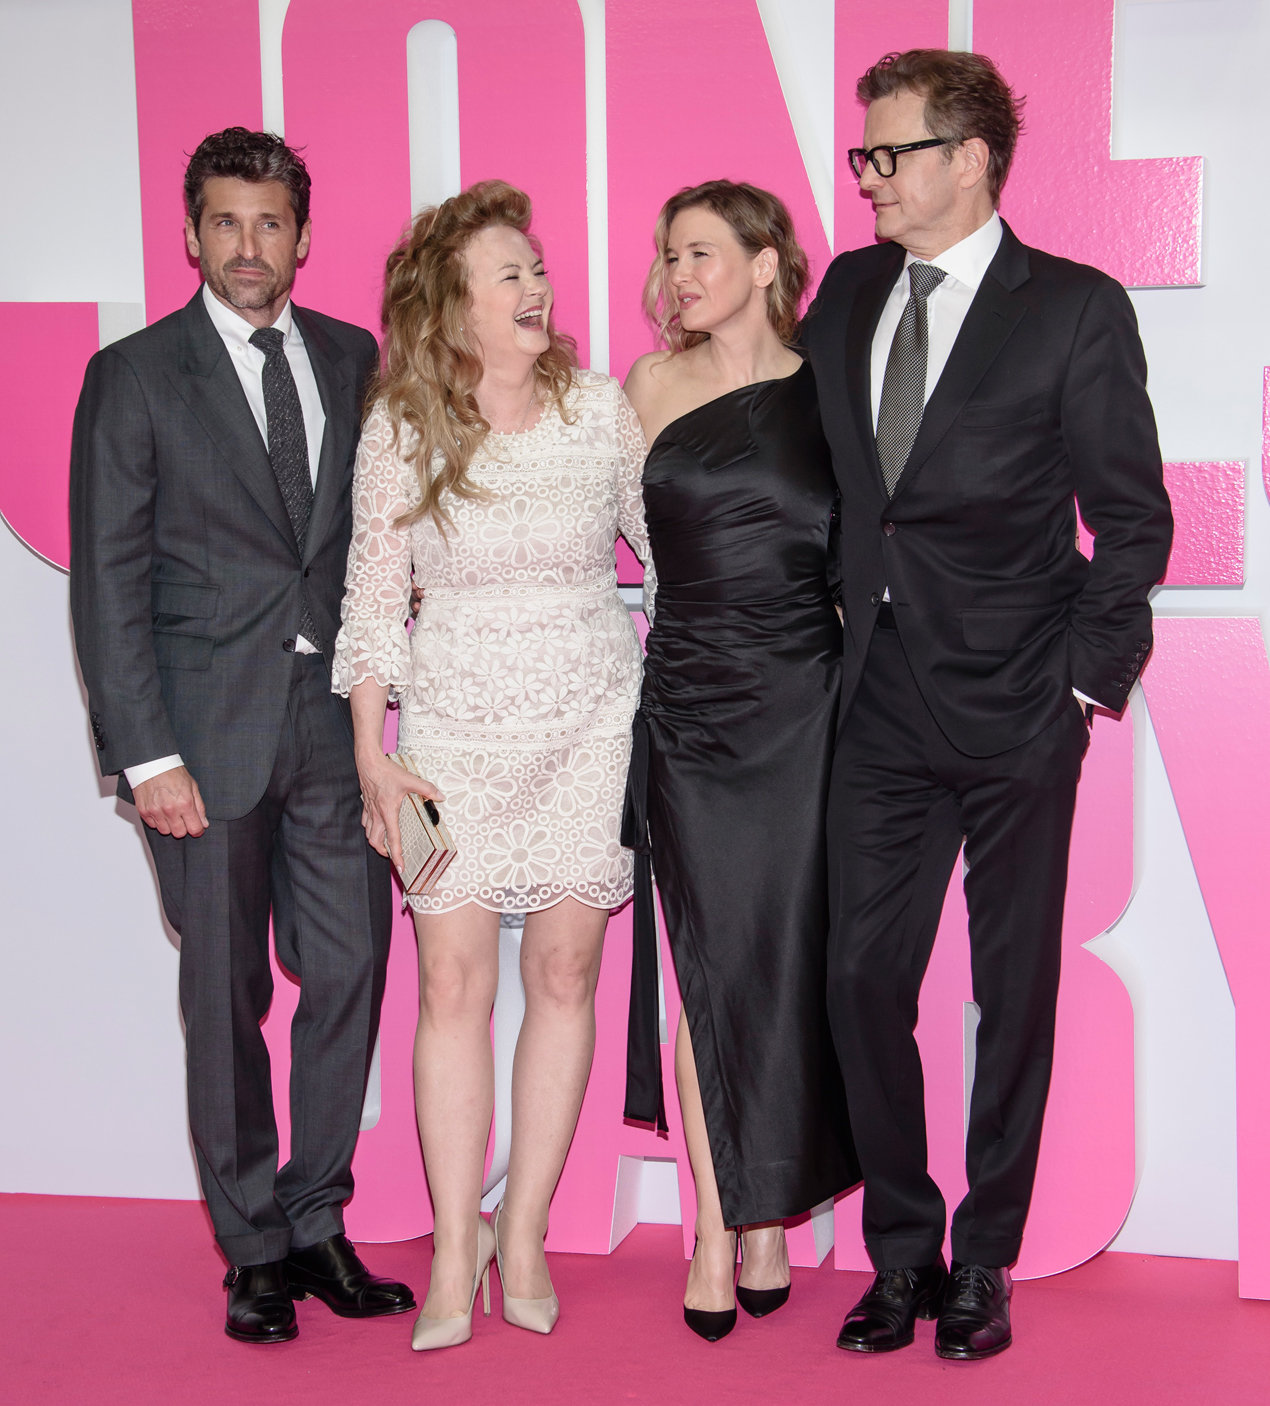 Bridget Jones' Baby Cast - Embed